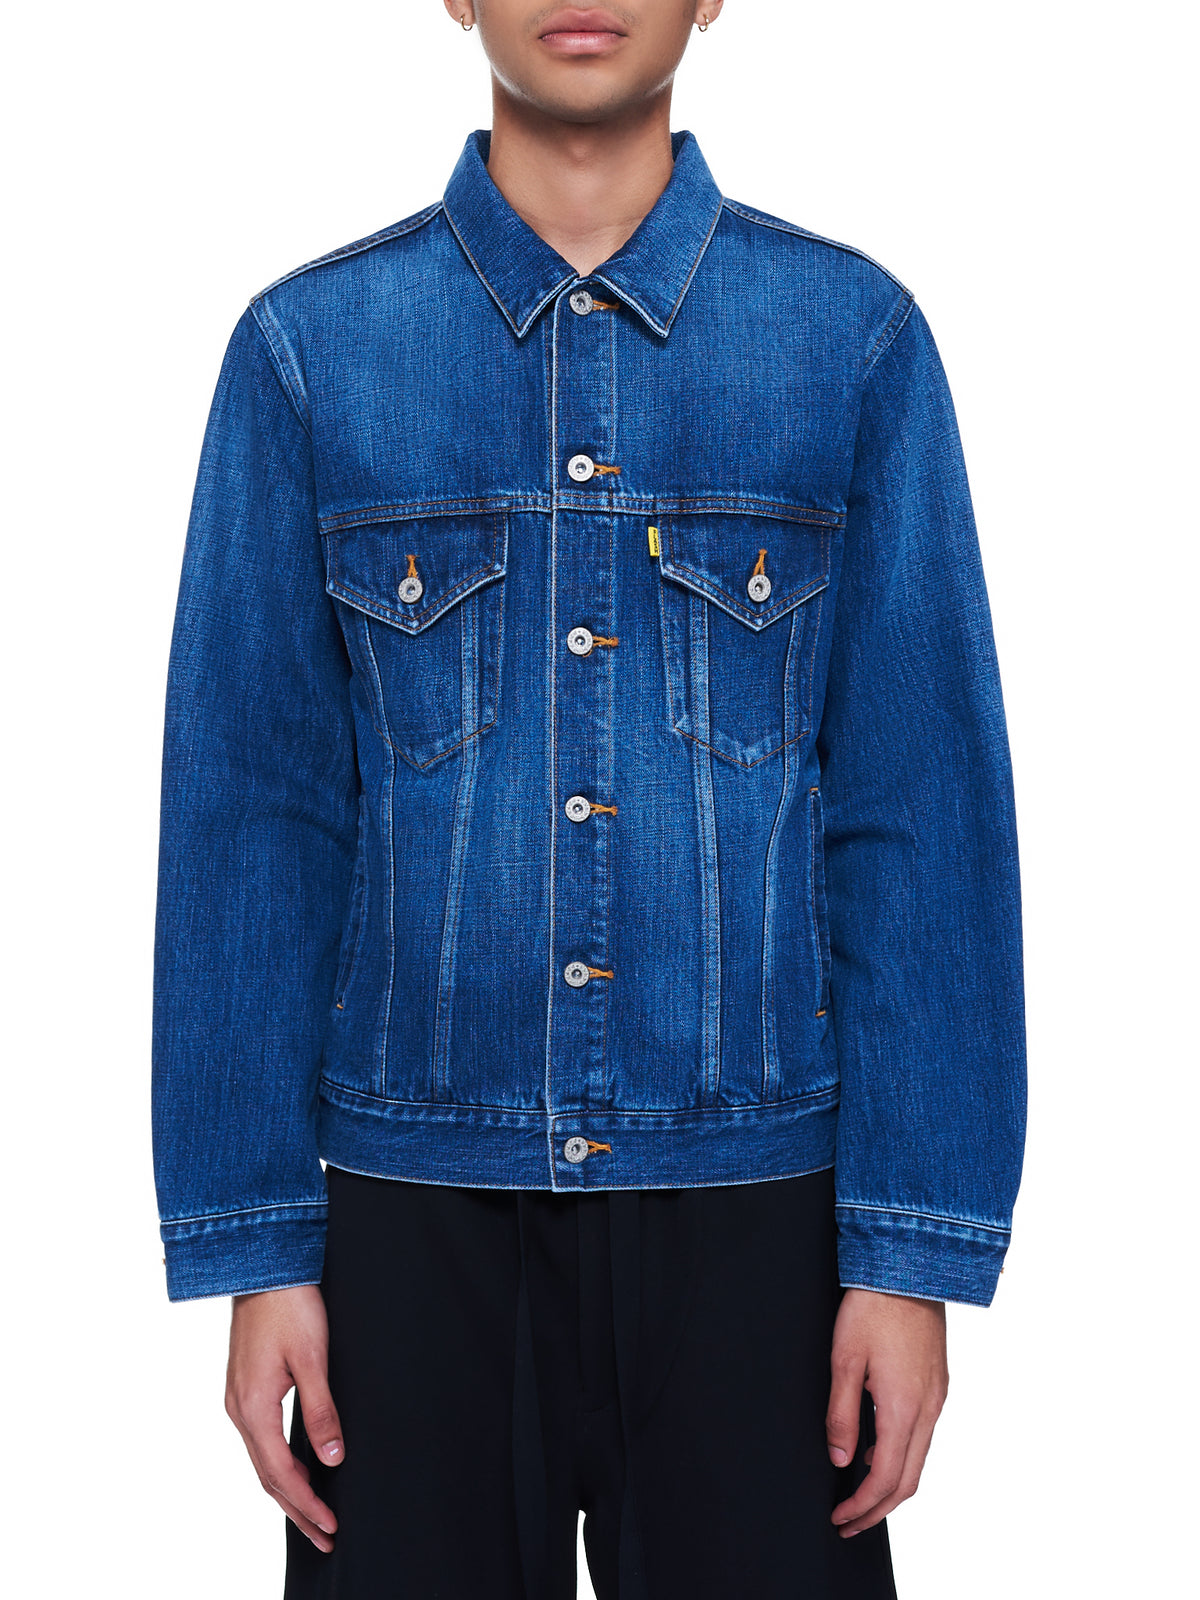 Memorial Polaroid Denim Jacket (06BL115-INDIGO)